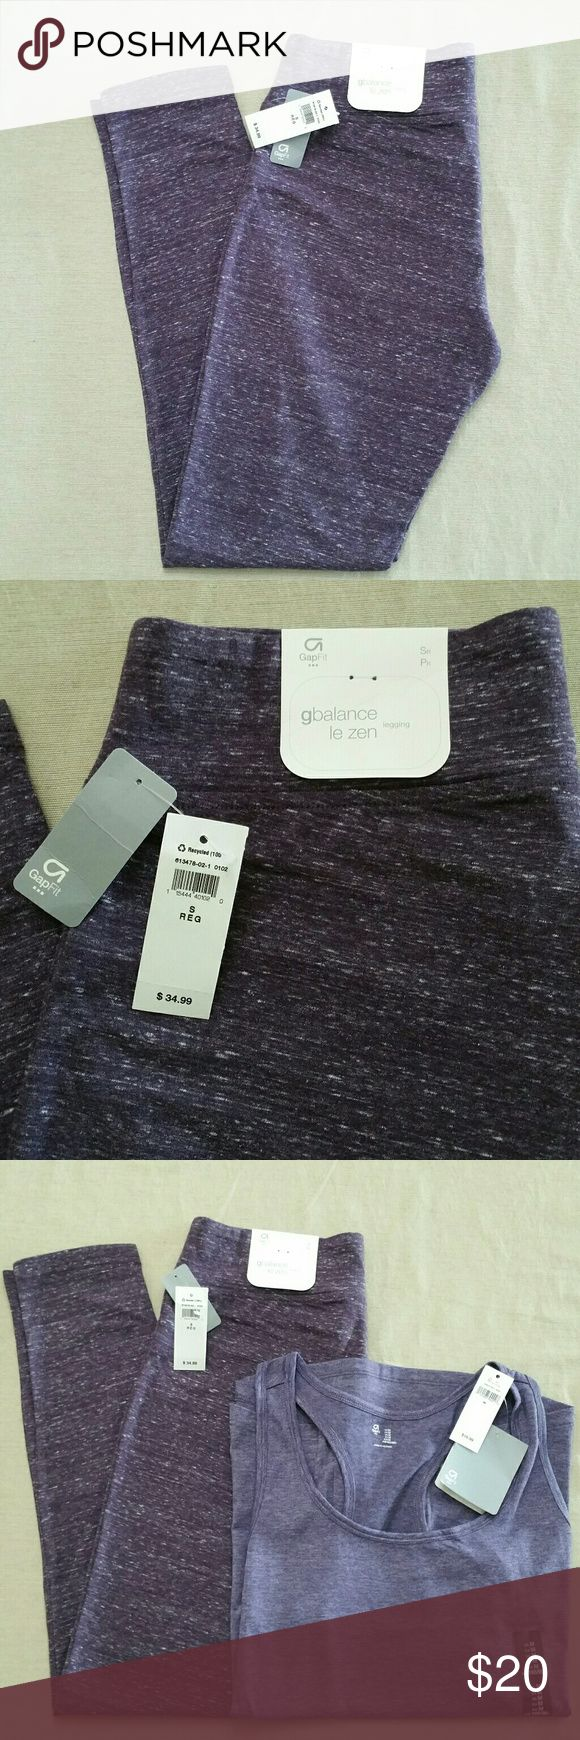 Gap Workout Leggings From The GapFit collection Regular rise, fitted through the hip and thigh, skinny leg. GAP Pants